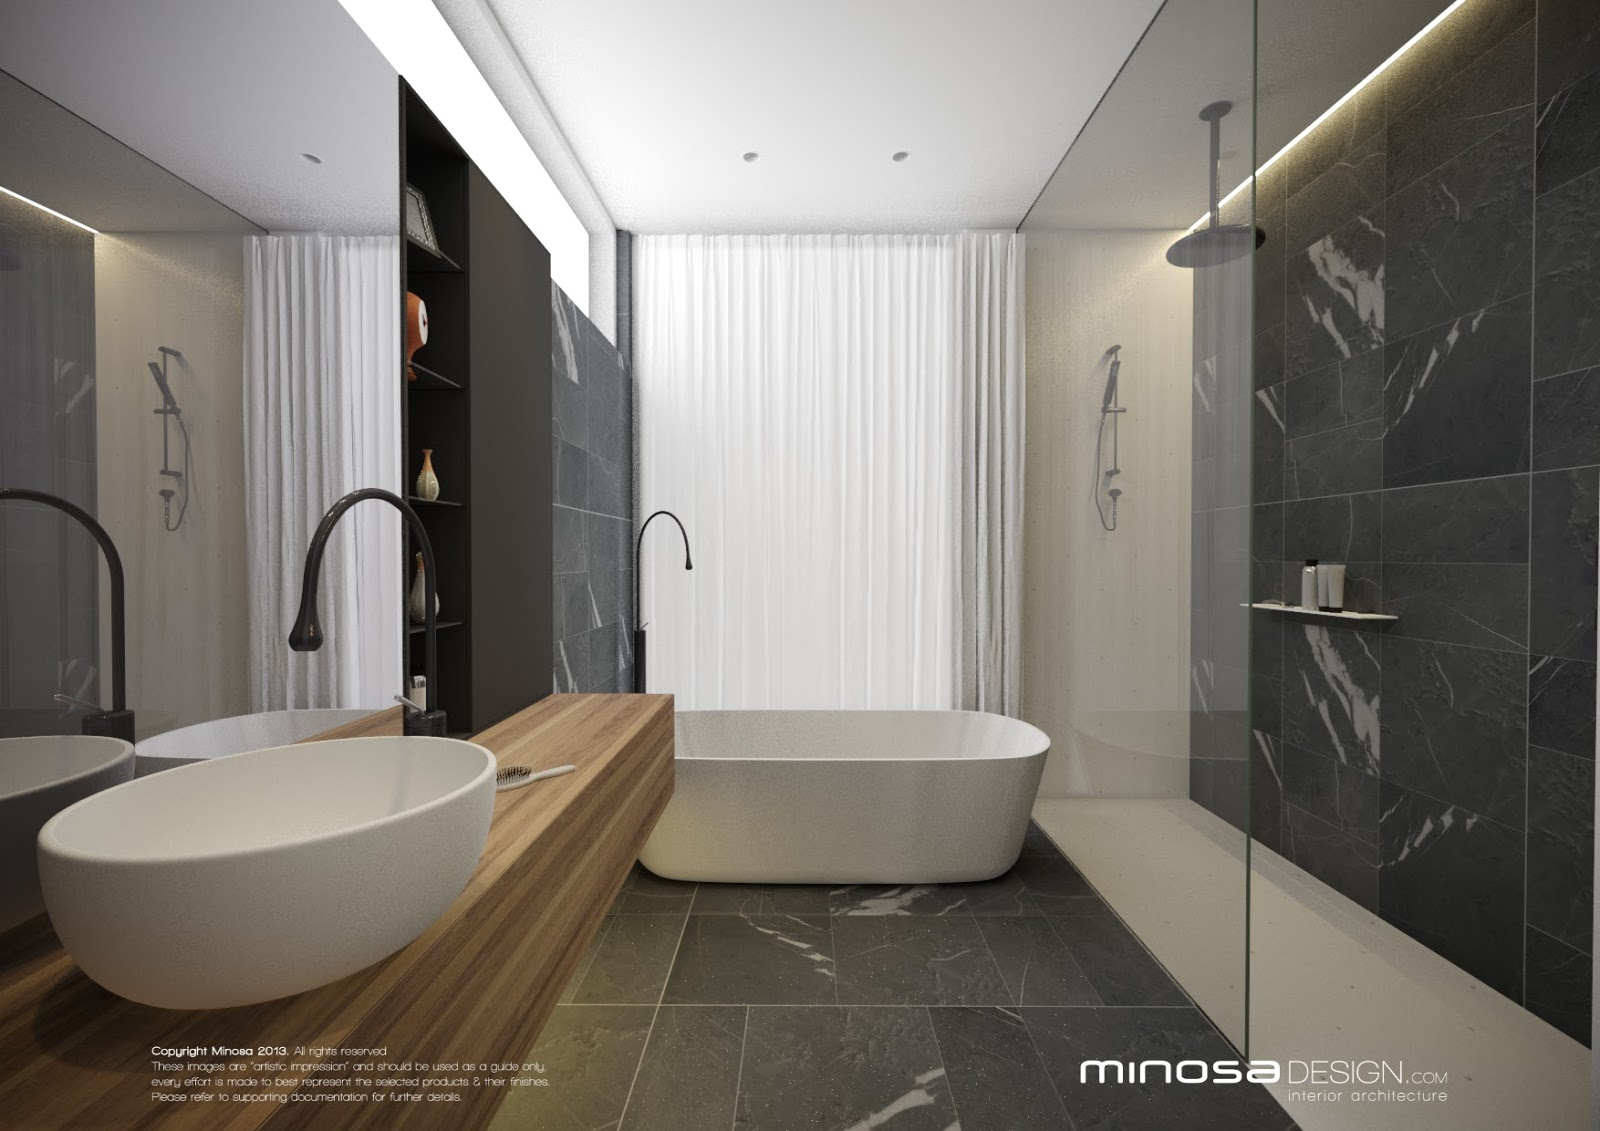 Minosa modern bathroom design to share for Pictures of new bathrooms